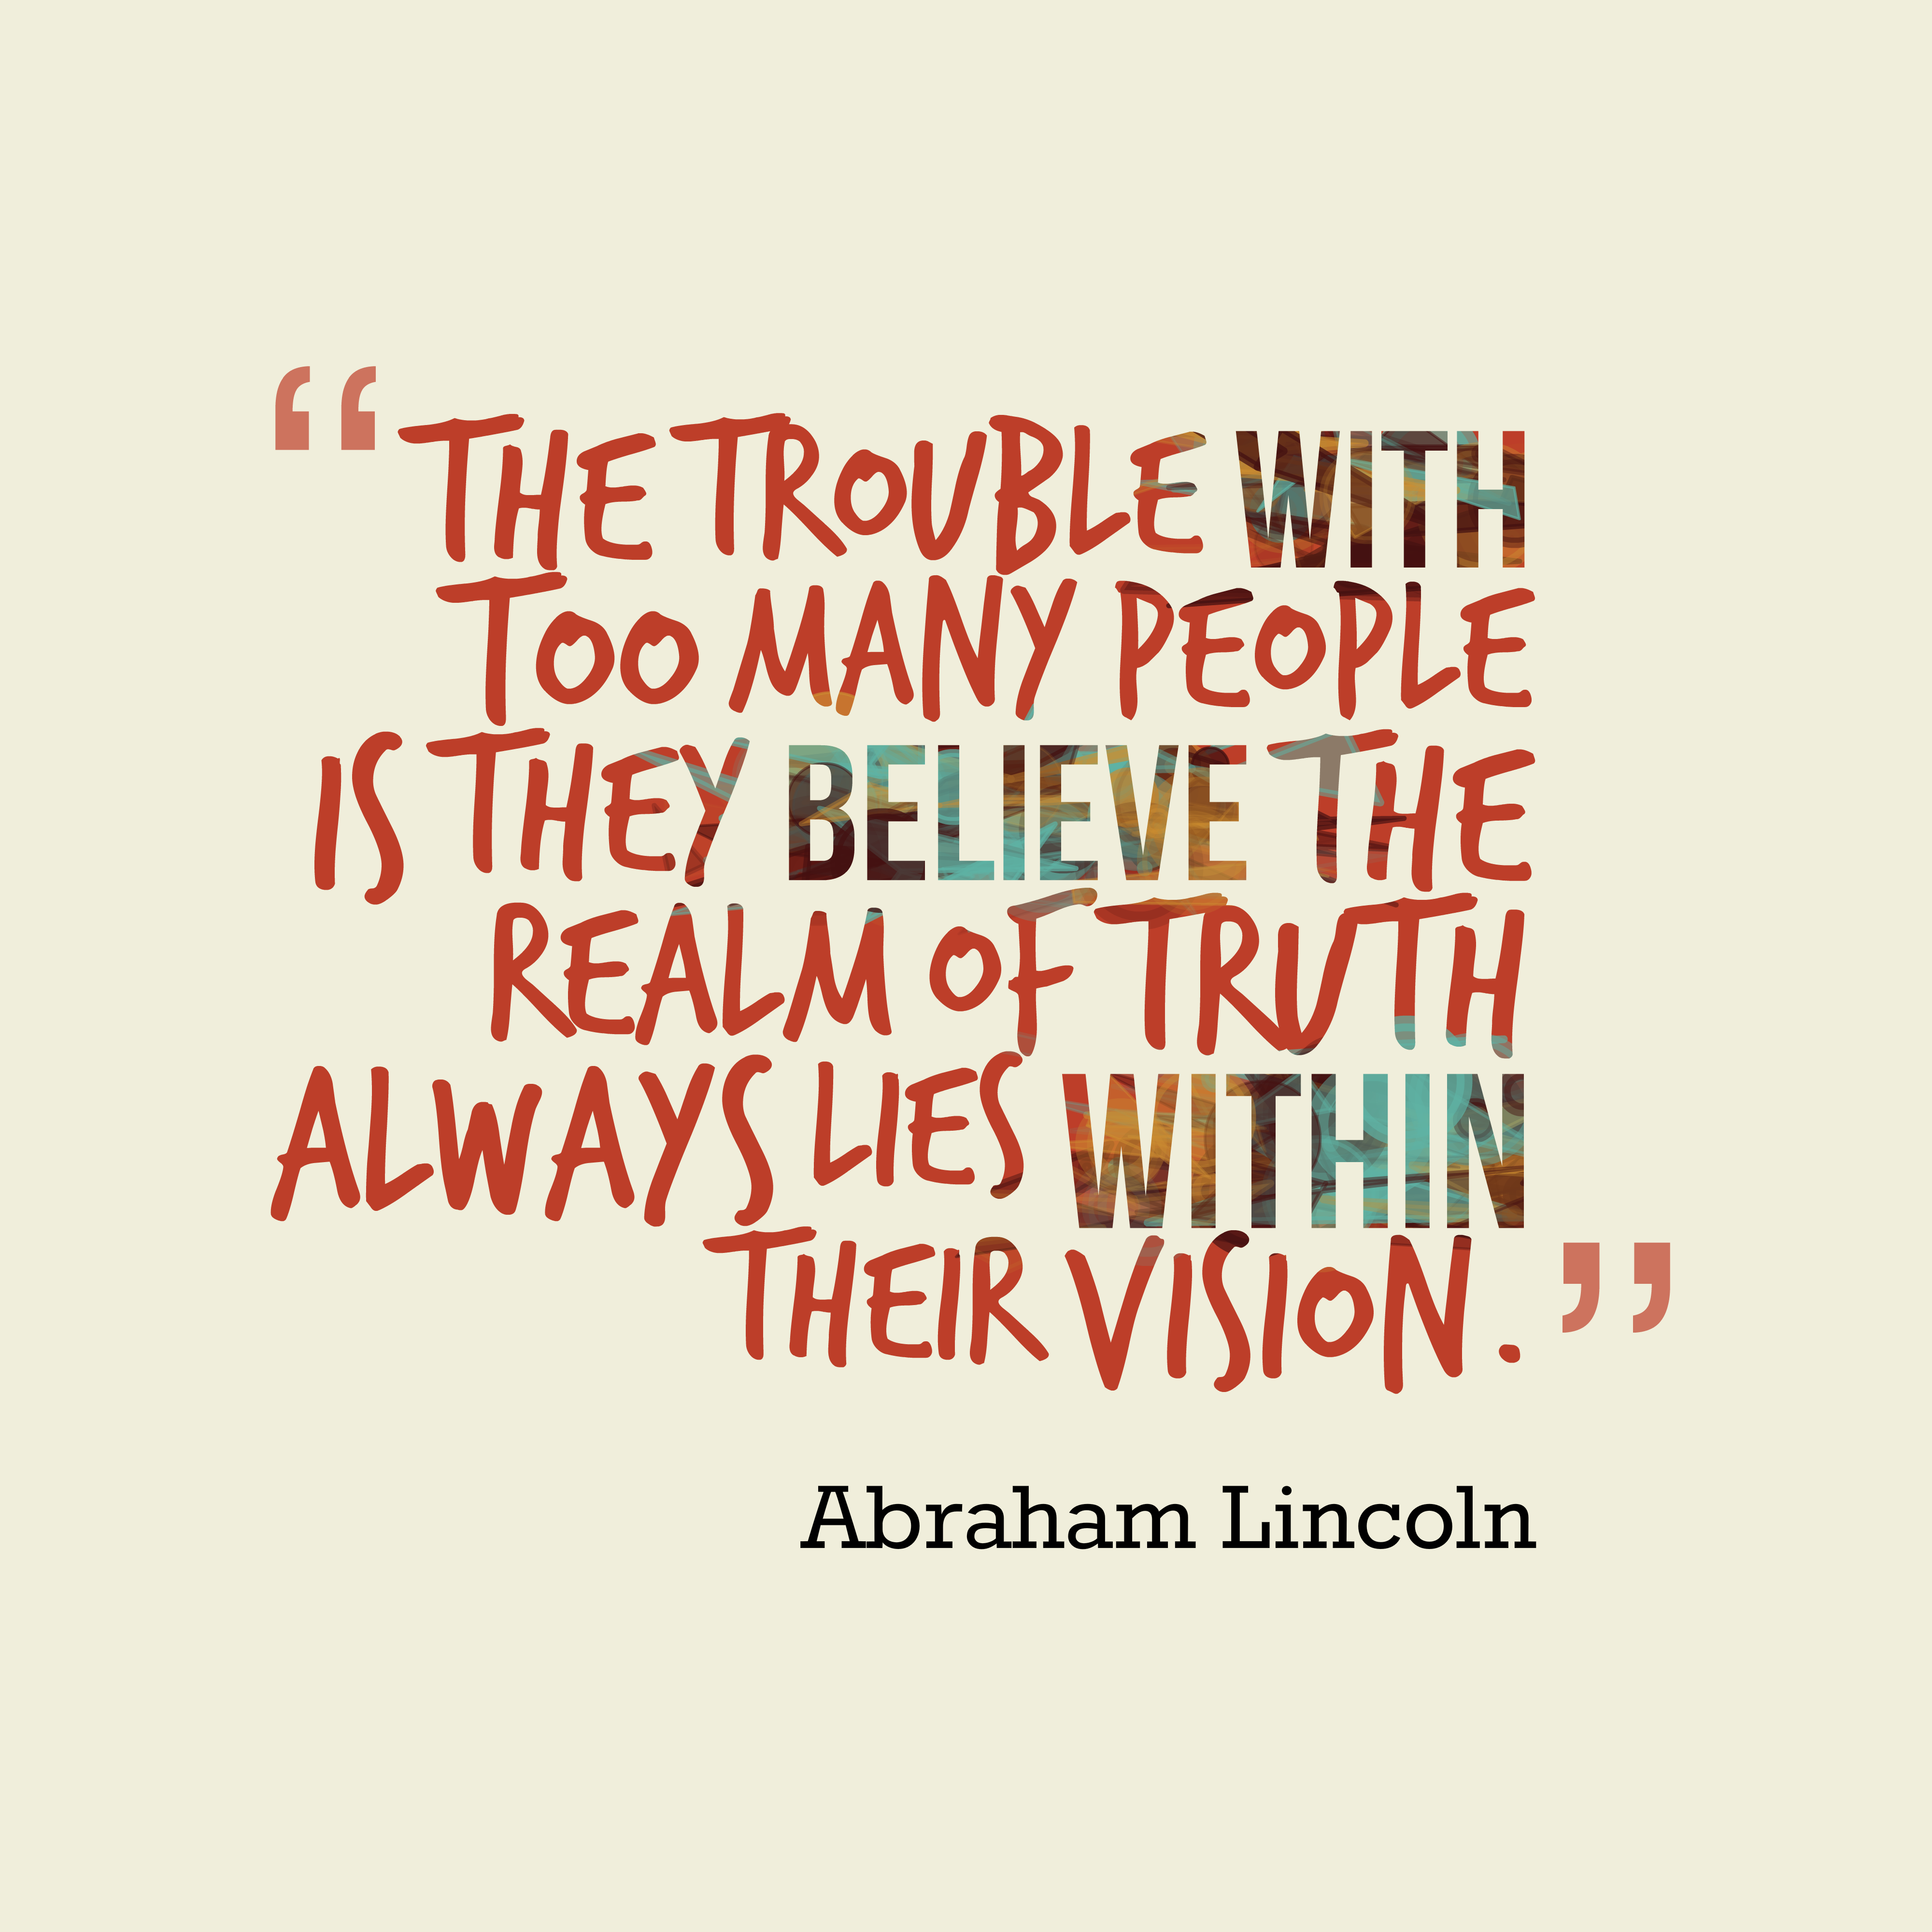 Quotes image of The trouble with too many people is they believe the realm of truth always lies within their vision.